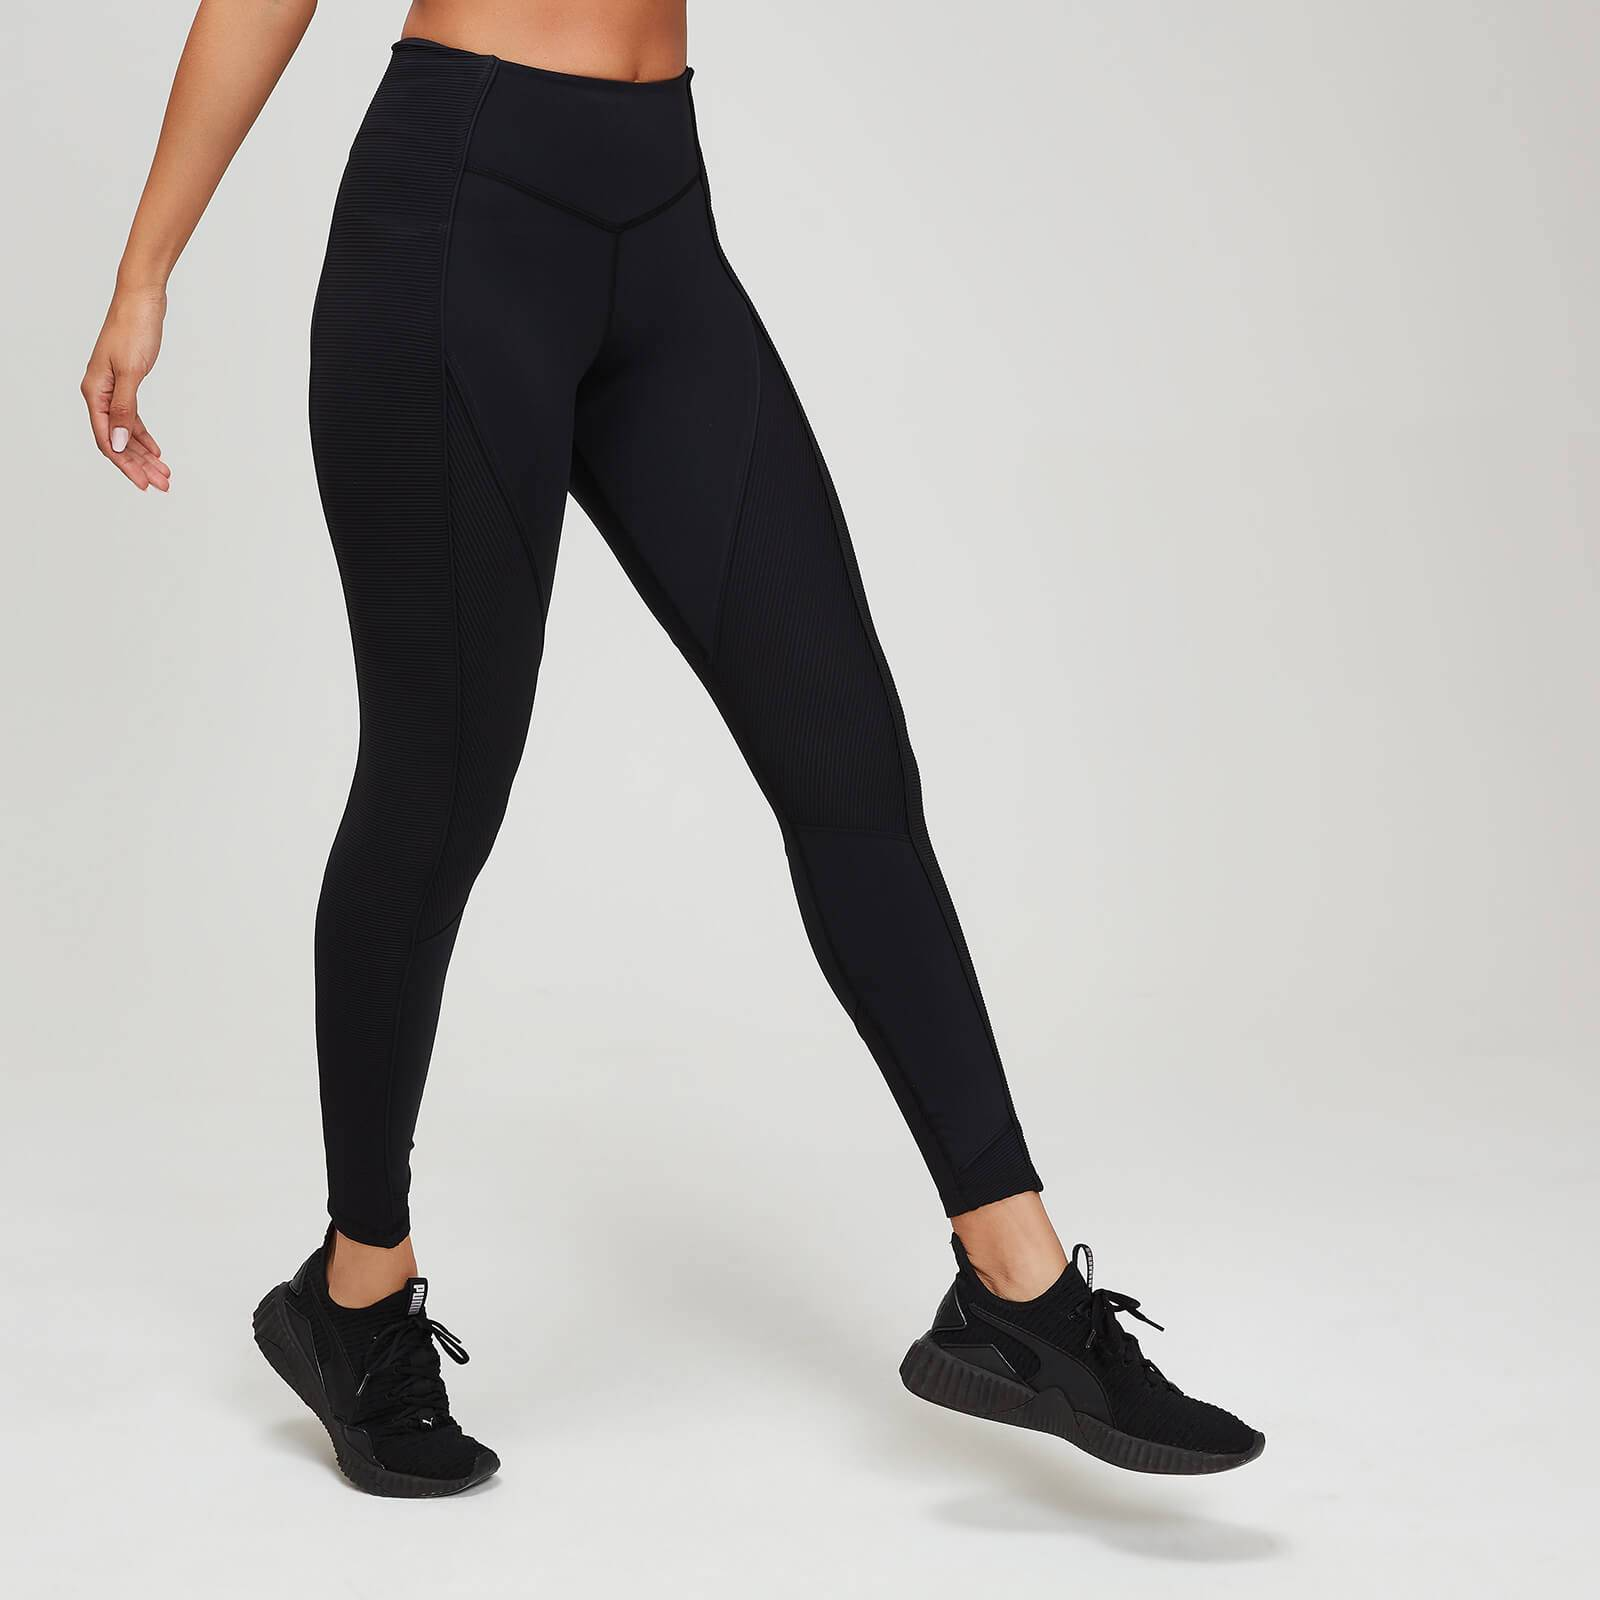 Myprotein Leggings MP testurizzati da donna - Nero - XL